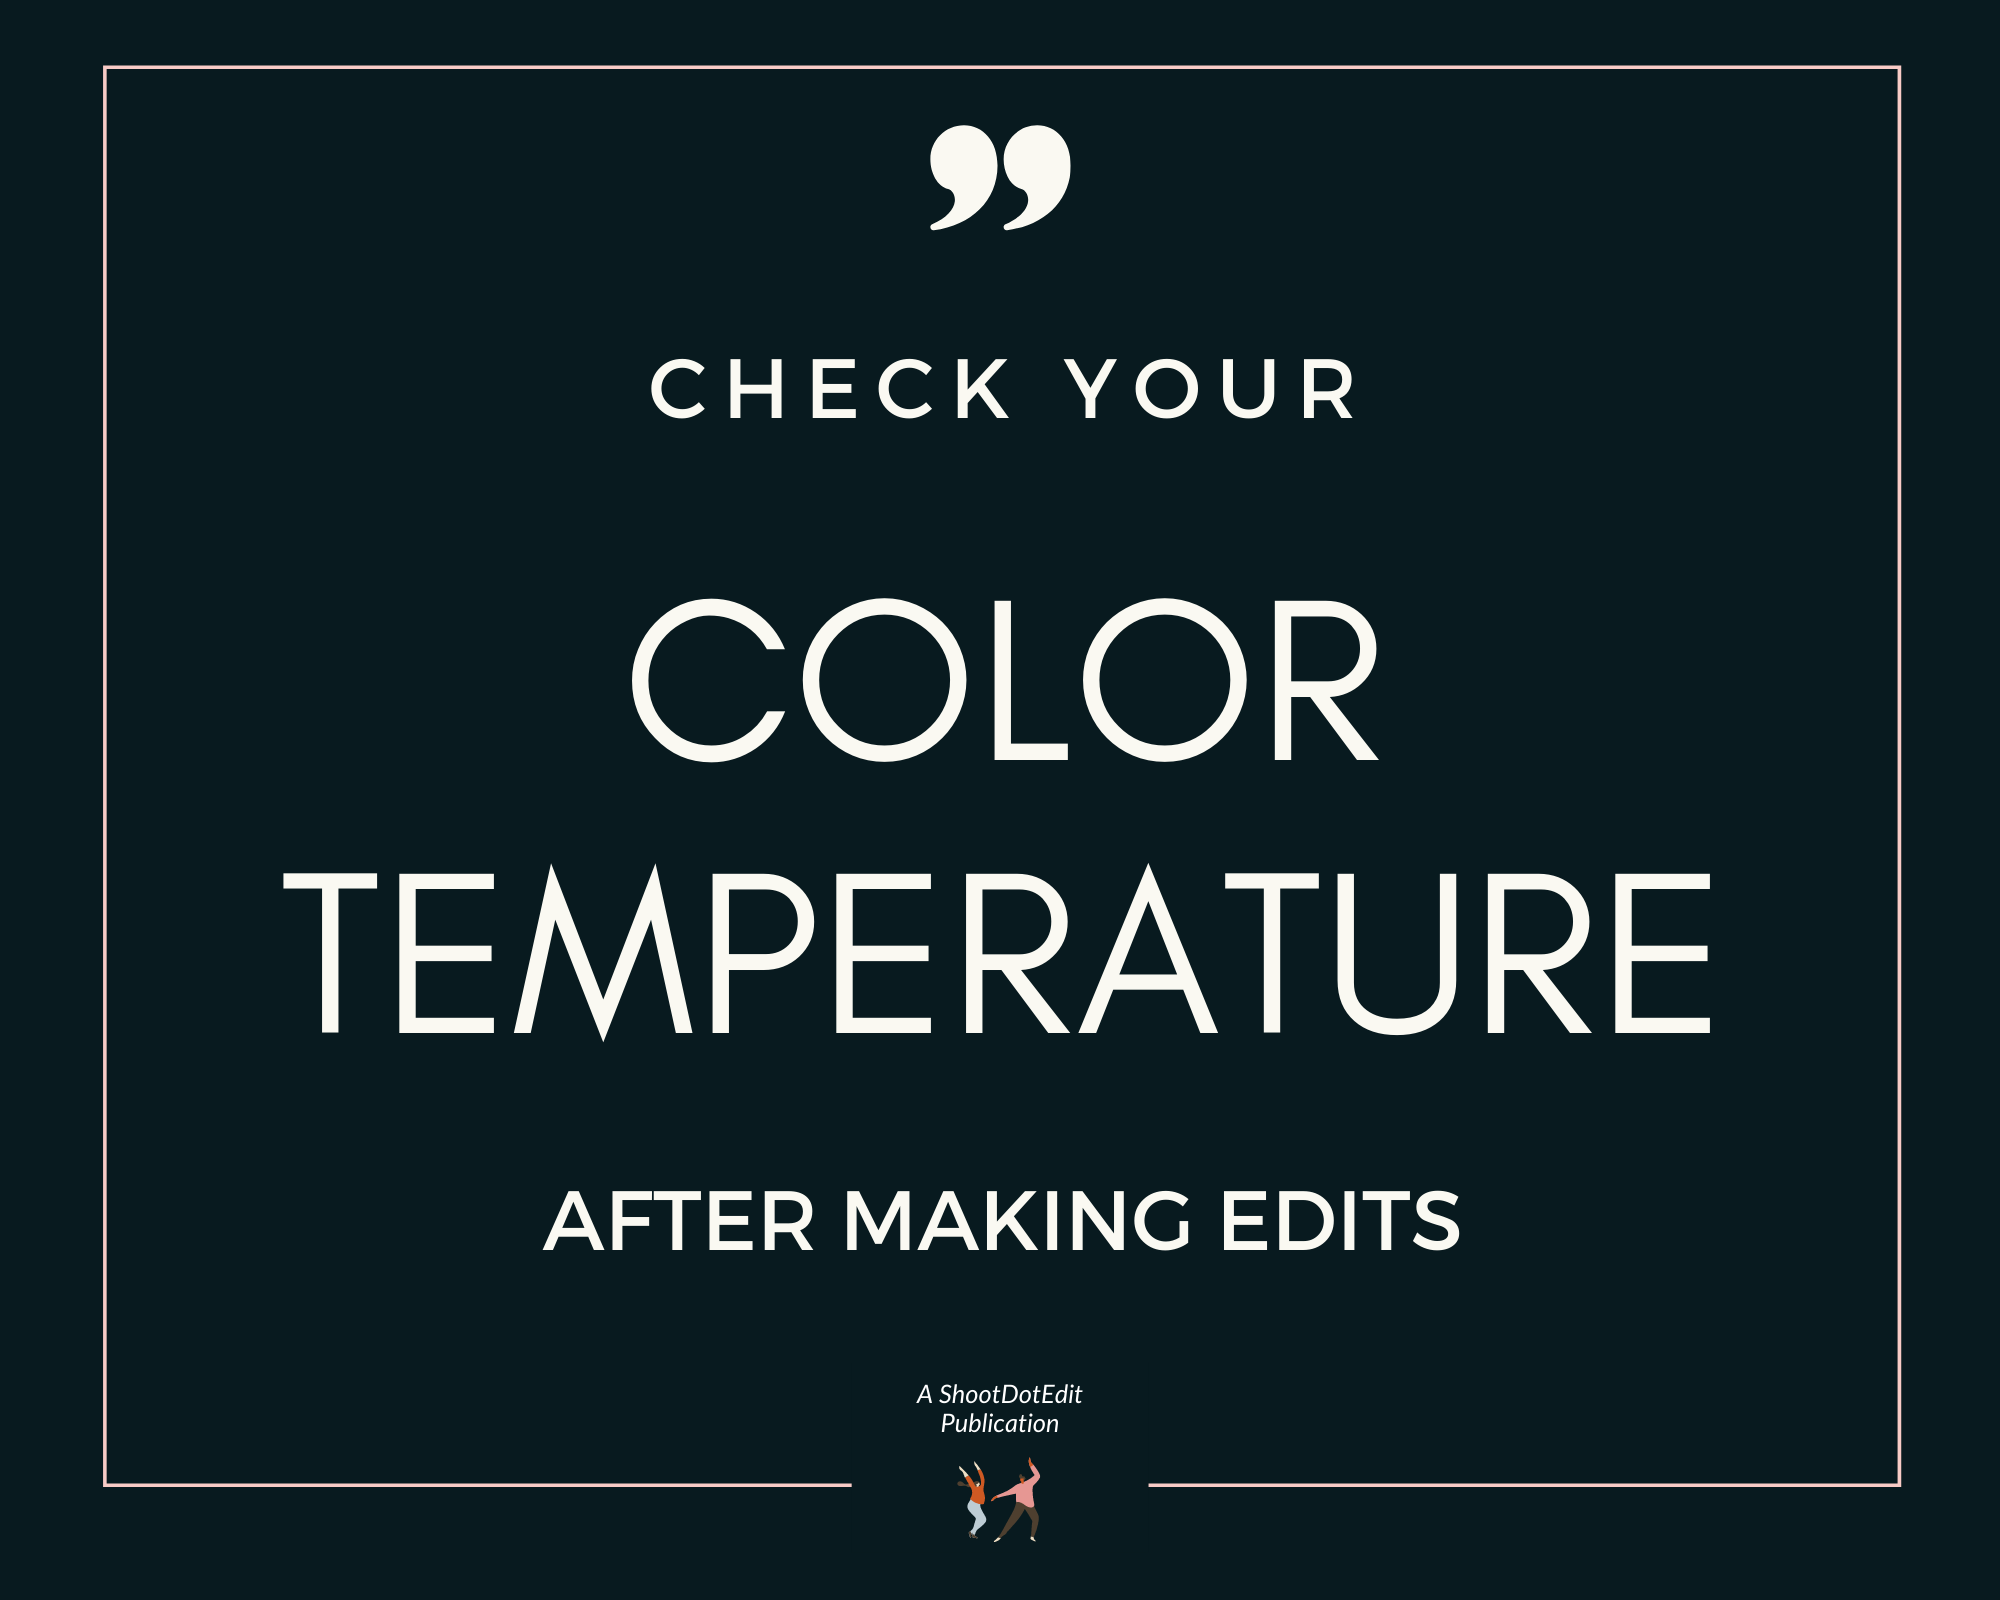 Infographic stating check your color temperature after making edits